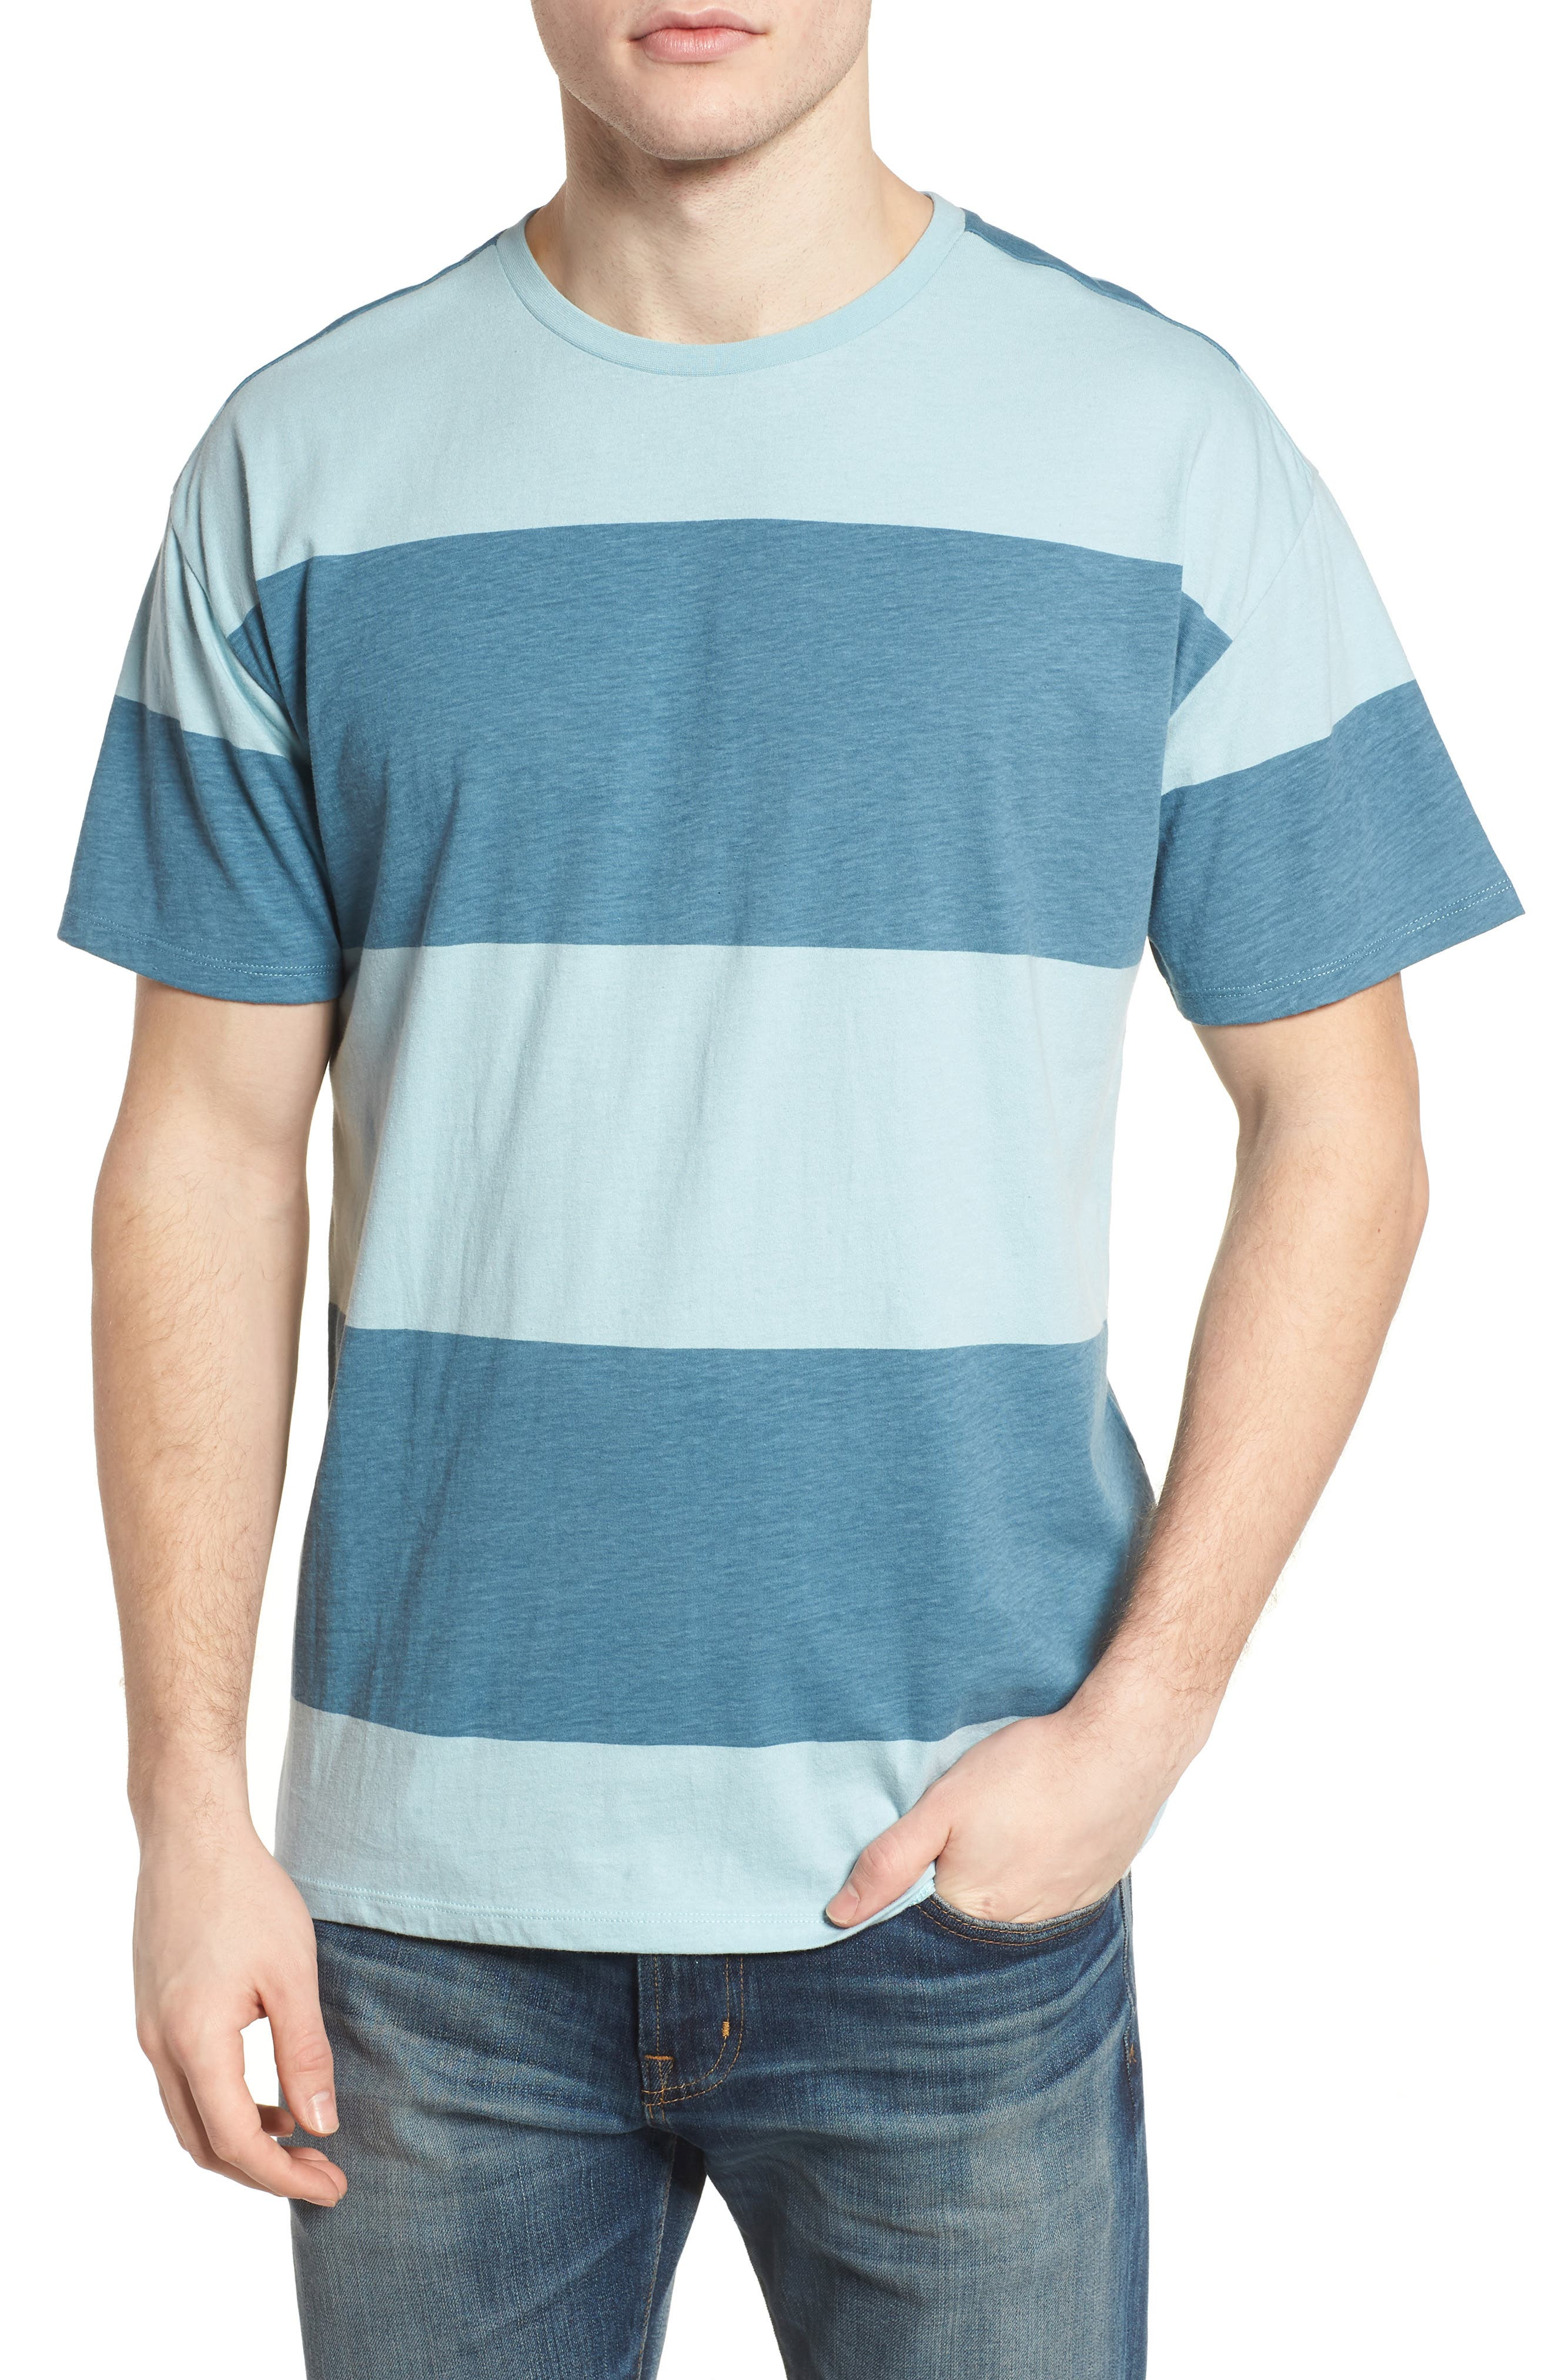 Rugby T-Shirt,                         Main,                         color, Noise Aqua / Obsidian